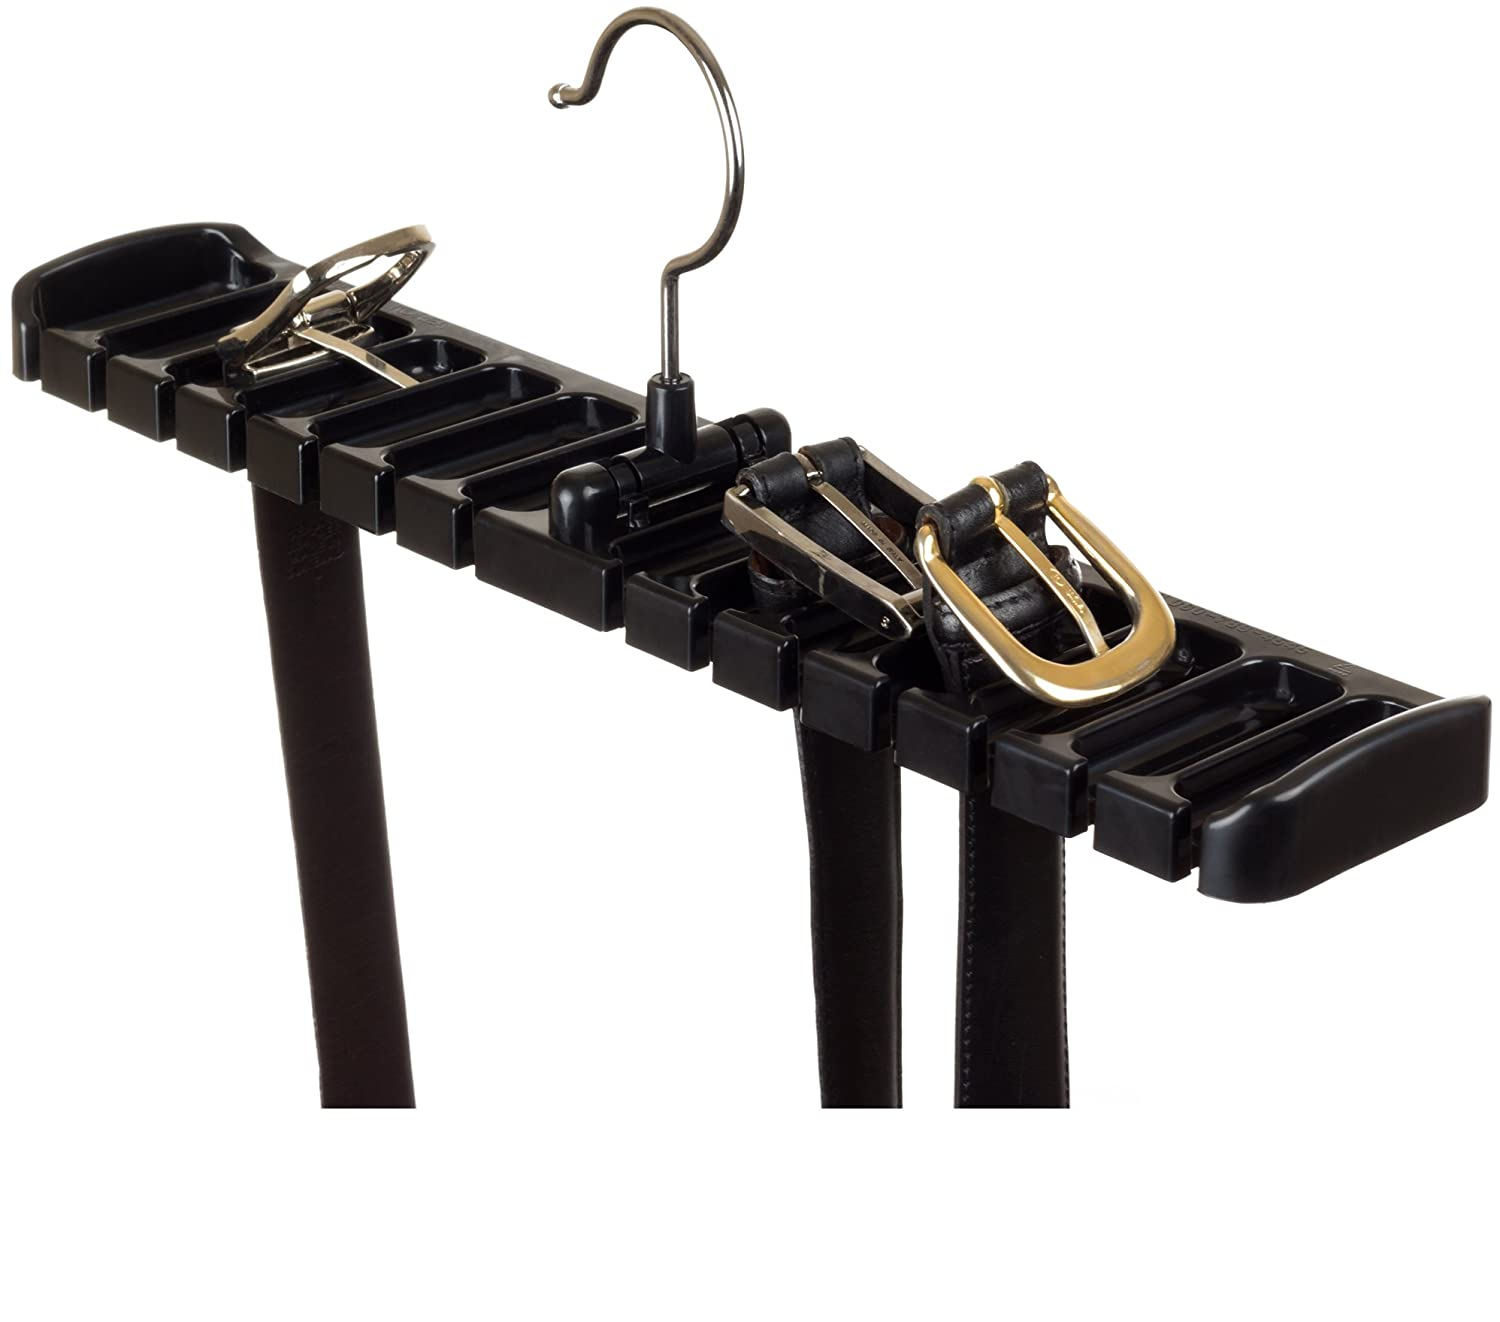 Tenby Living Black Belt Rack, Organizer, Hanger, Holder - Stylish Belt Rack, Sturdy ABS Plastic